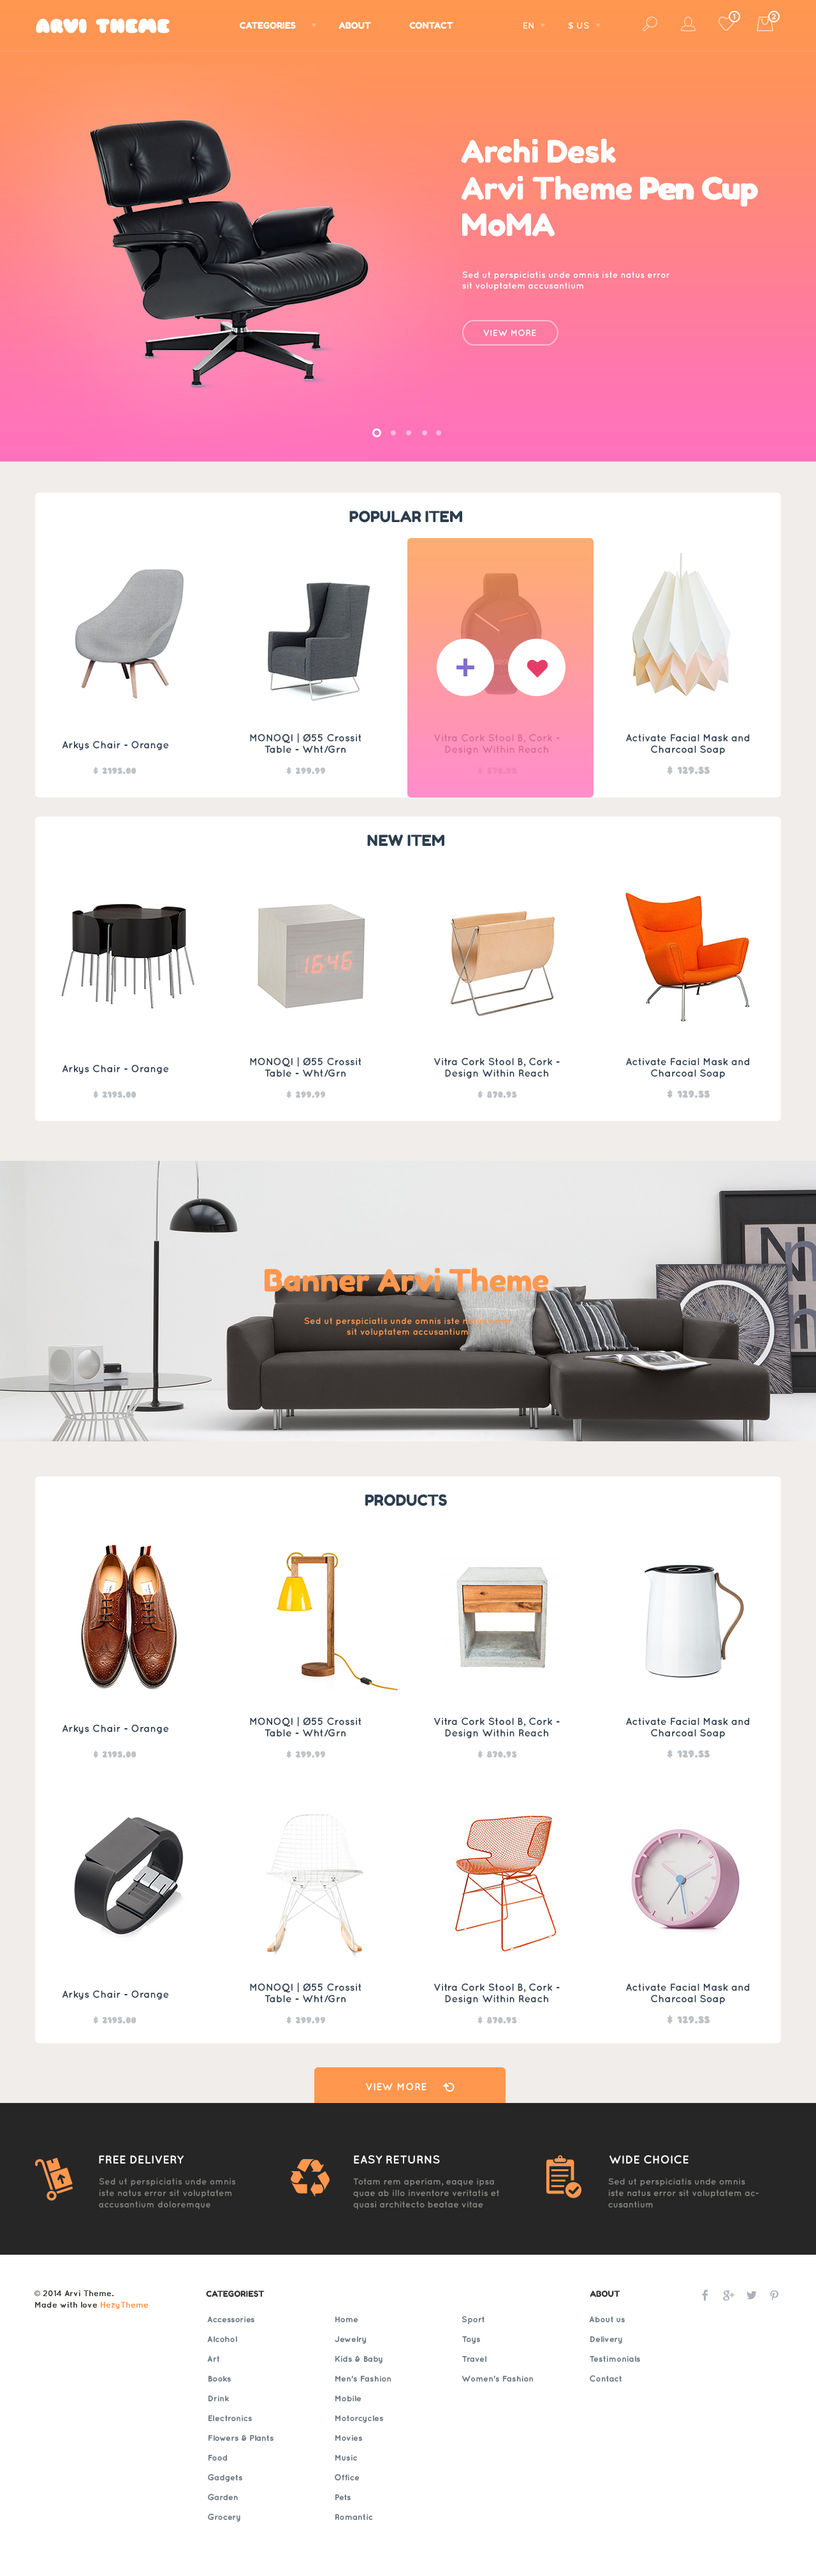 Arvi free e commerce website template freebies fribly for E commerce sites templates